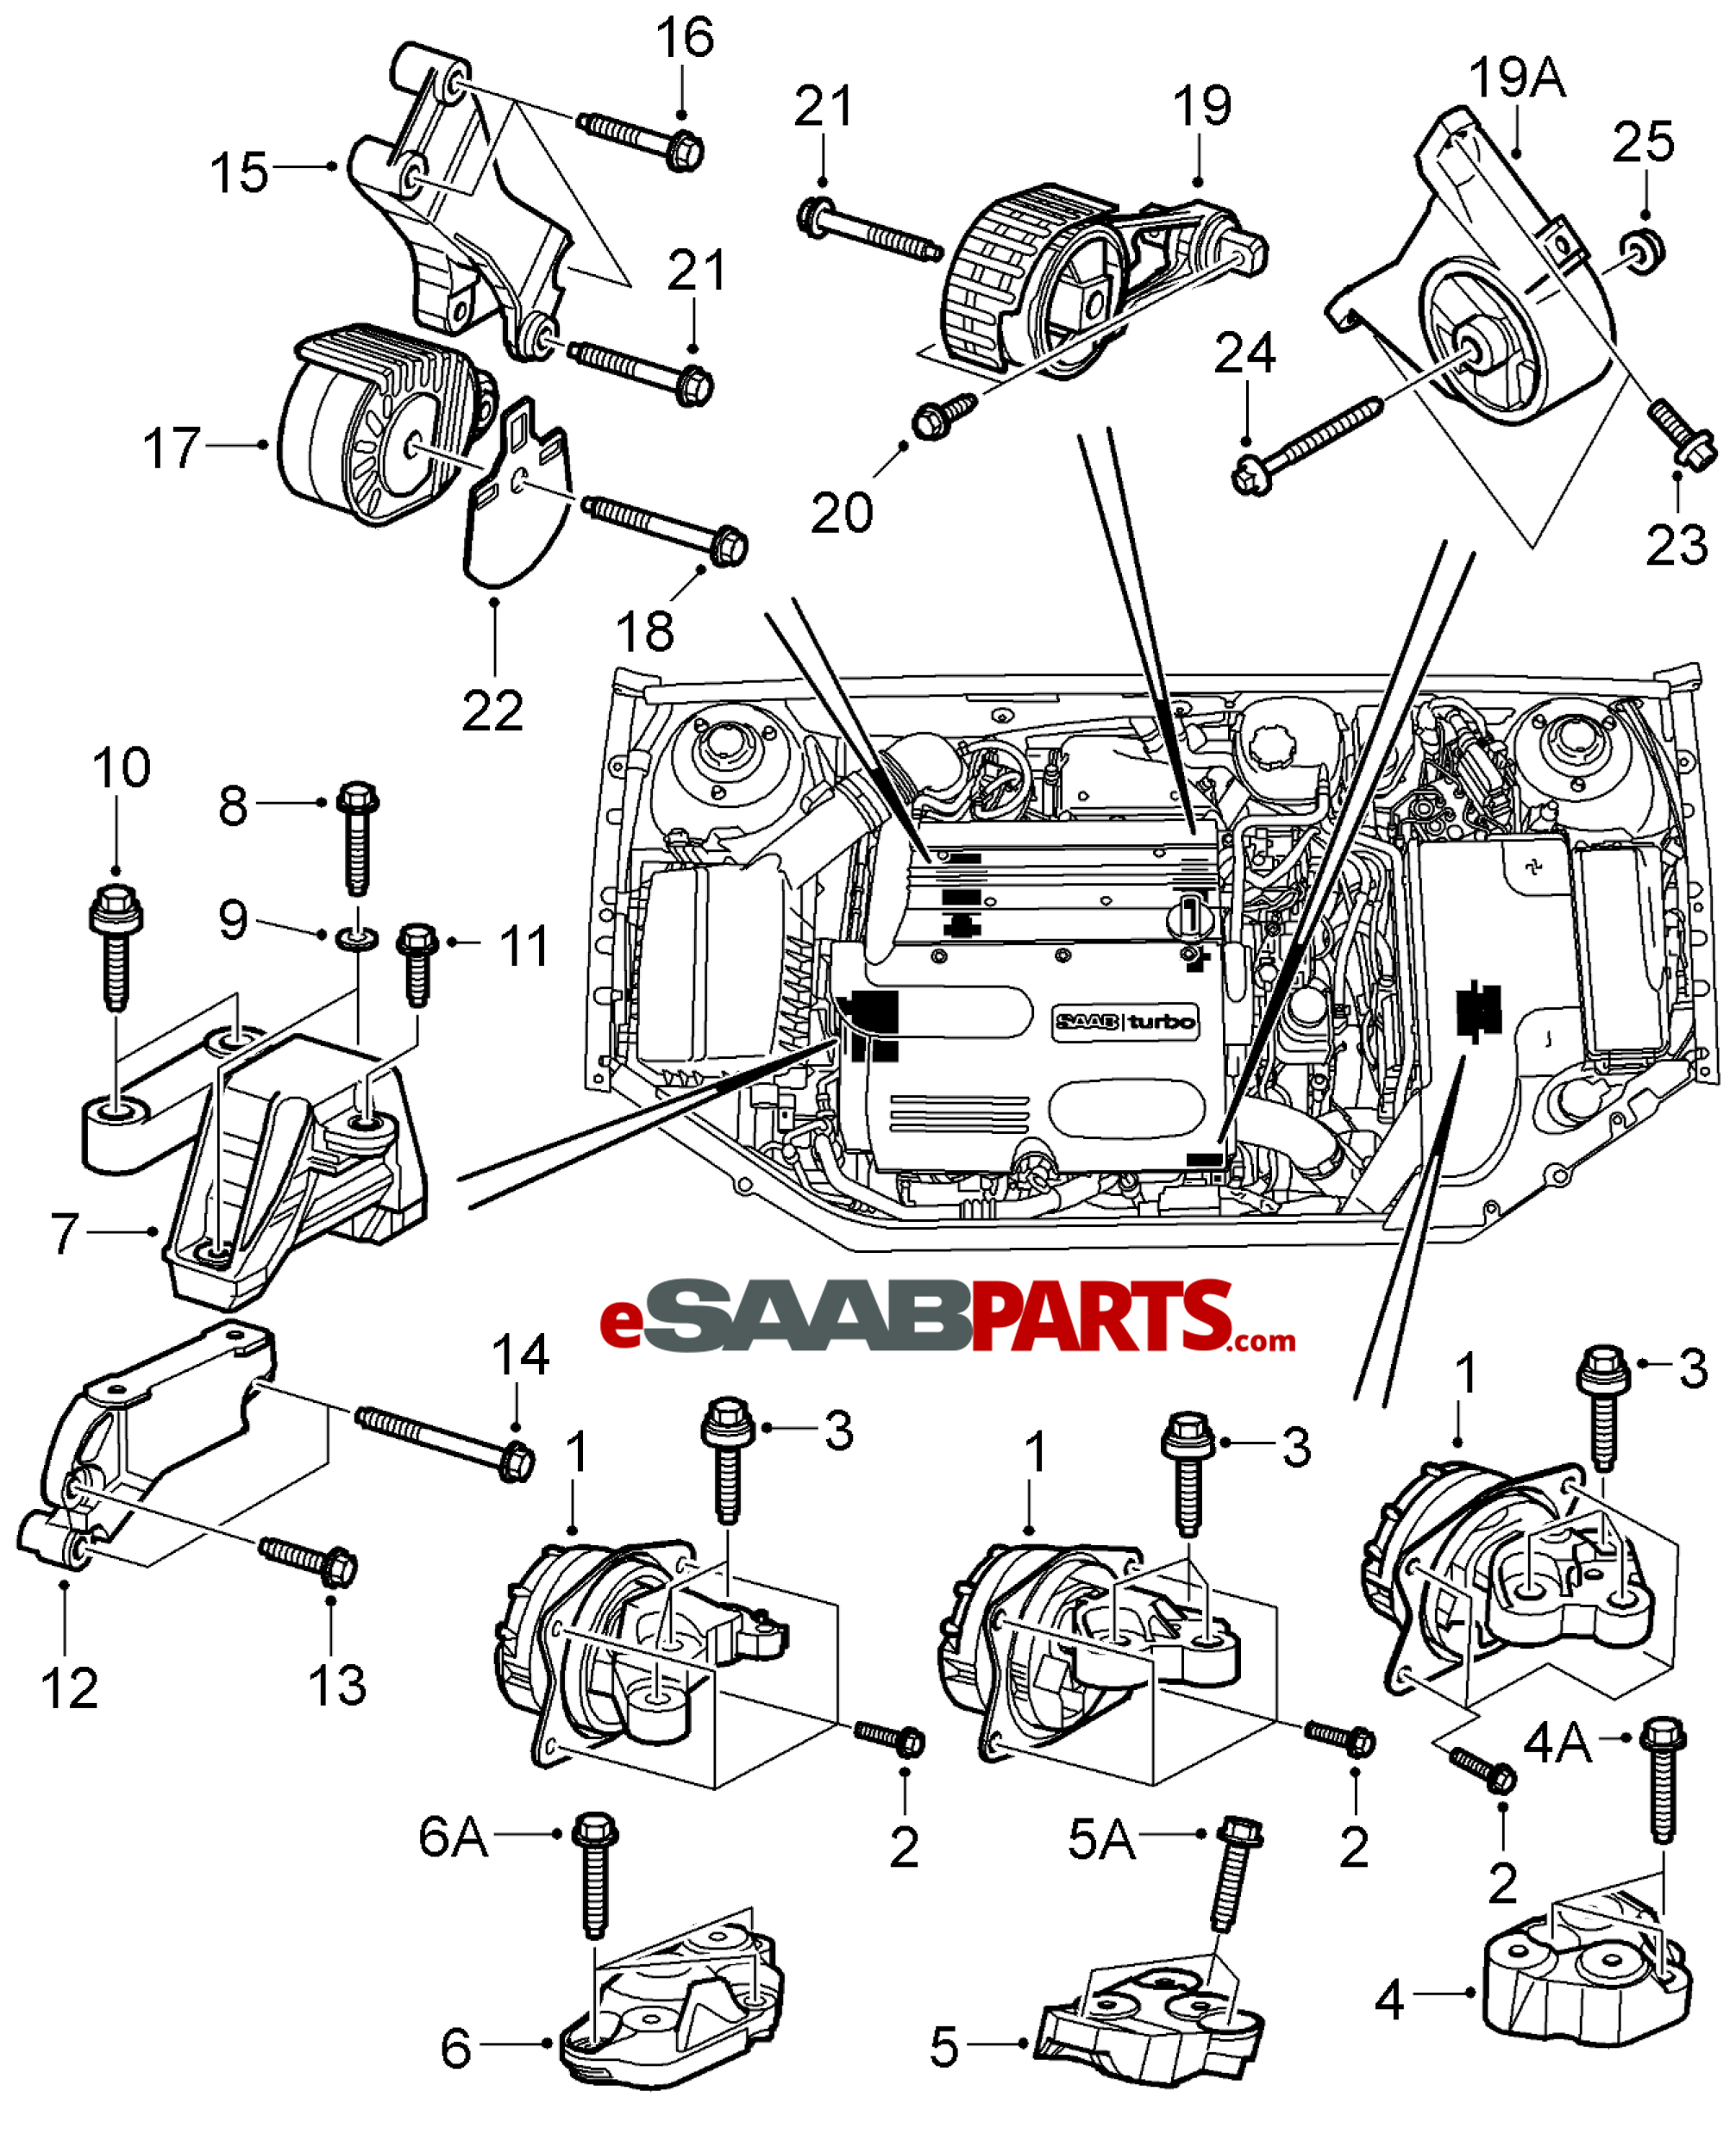 eSaabParts.com - Saab 9-3 (9440) > Engine Parts > Engine Mounts > Engine &  Transmission Mounts (B207)eSaabParts.com